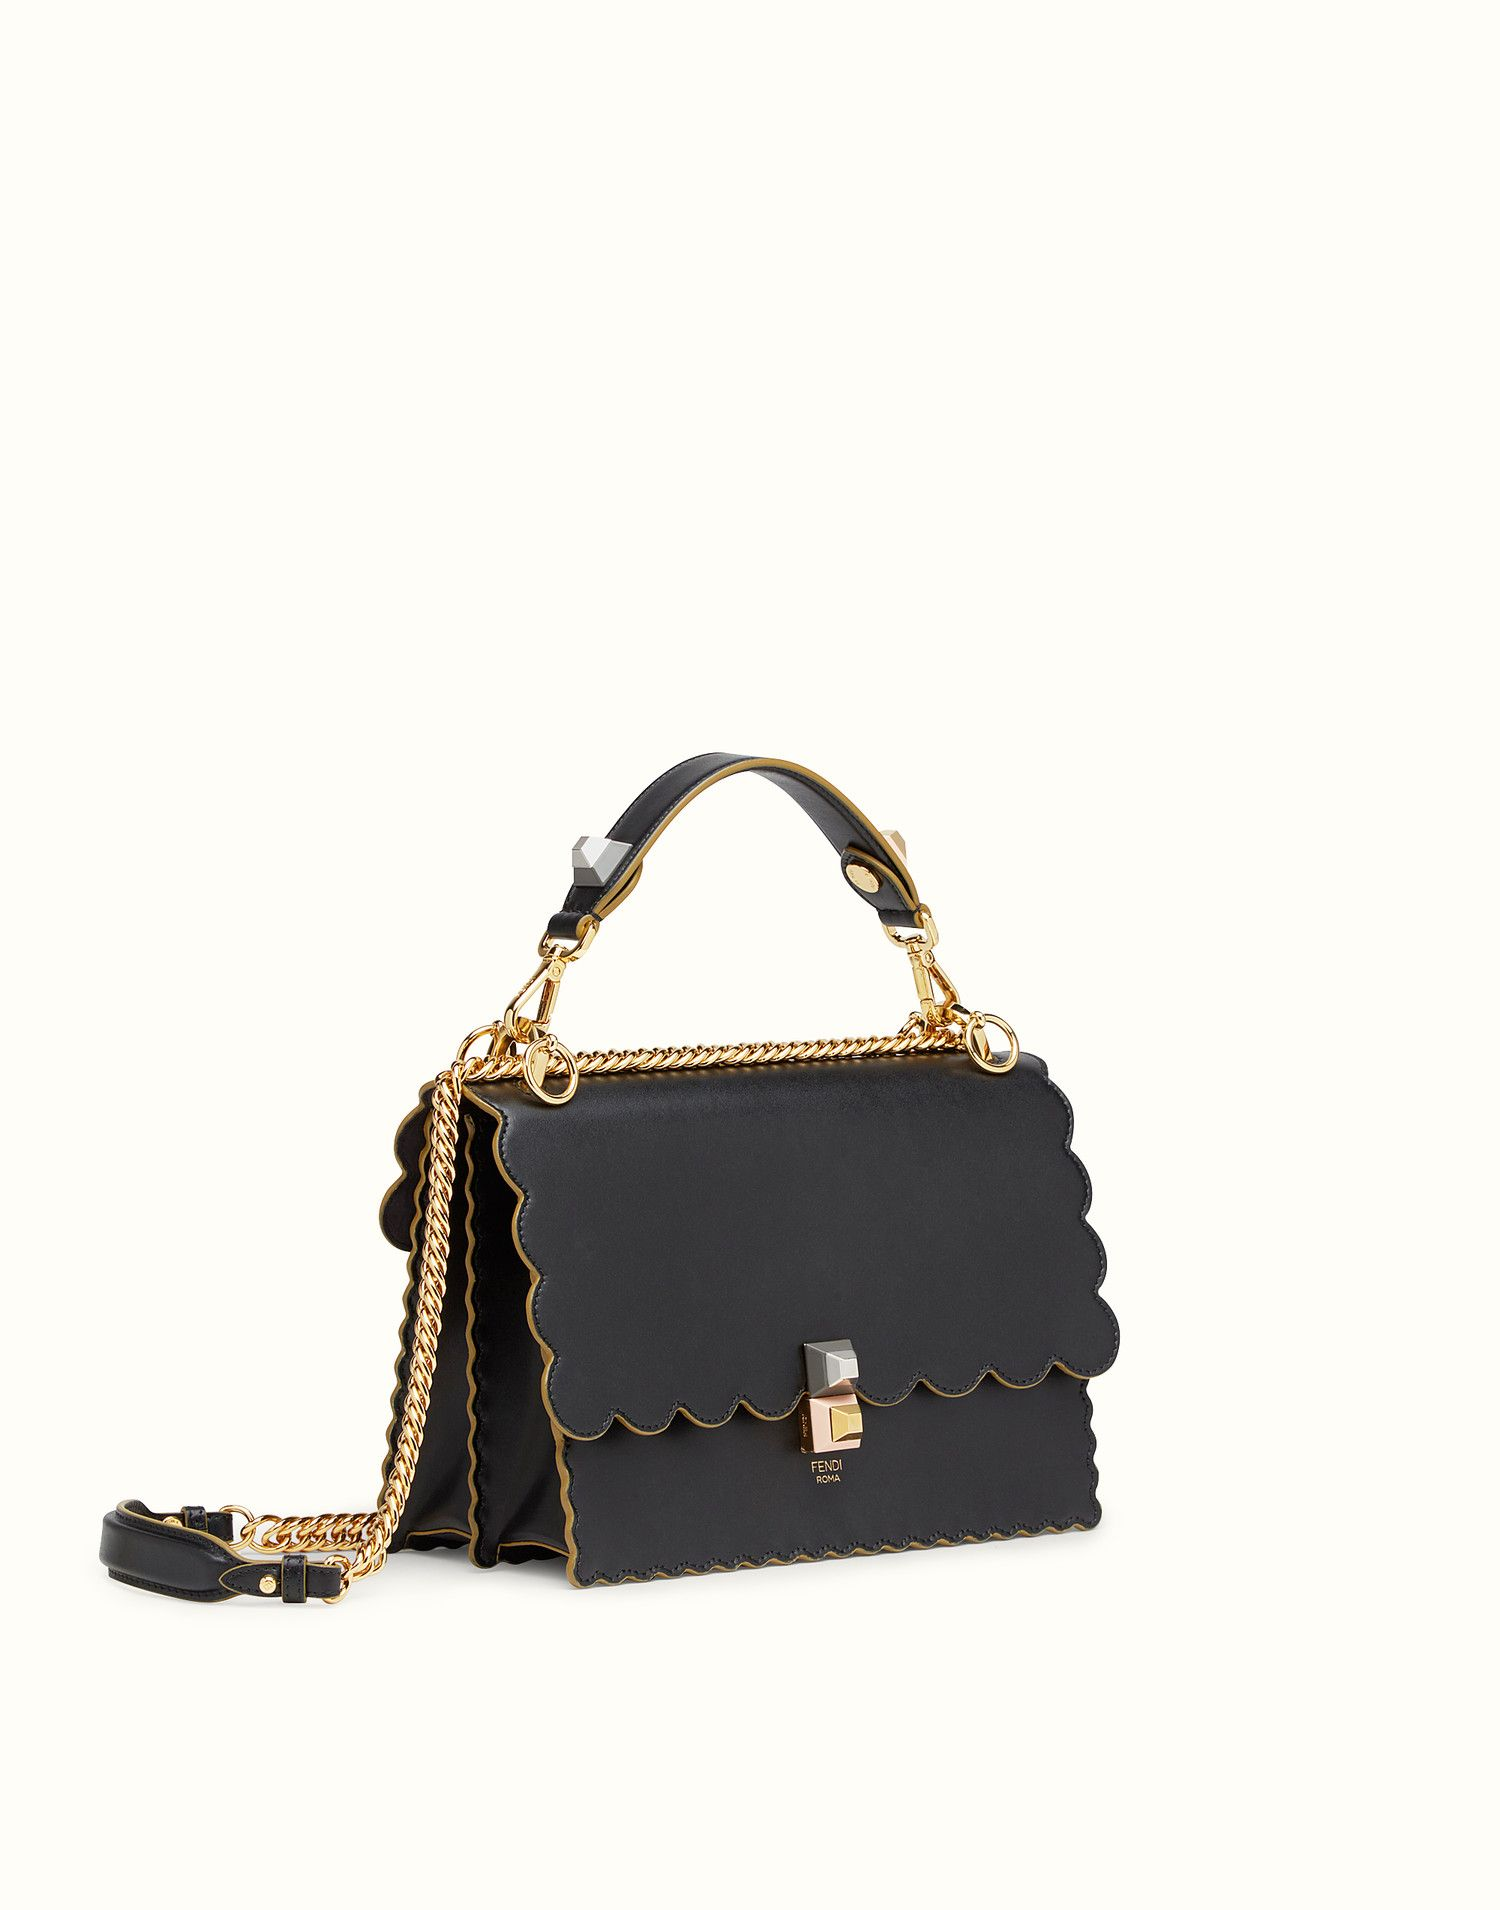 96244301b4 FENDI KAN I - Black and gold leather bag - view 2 zoom